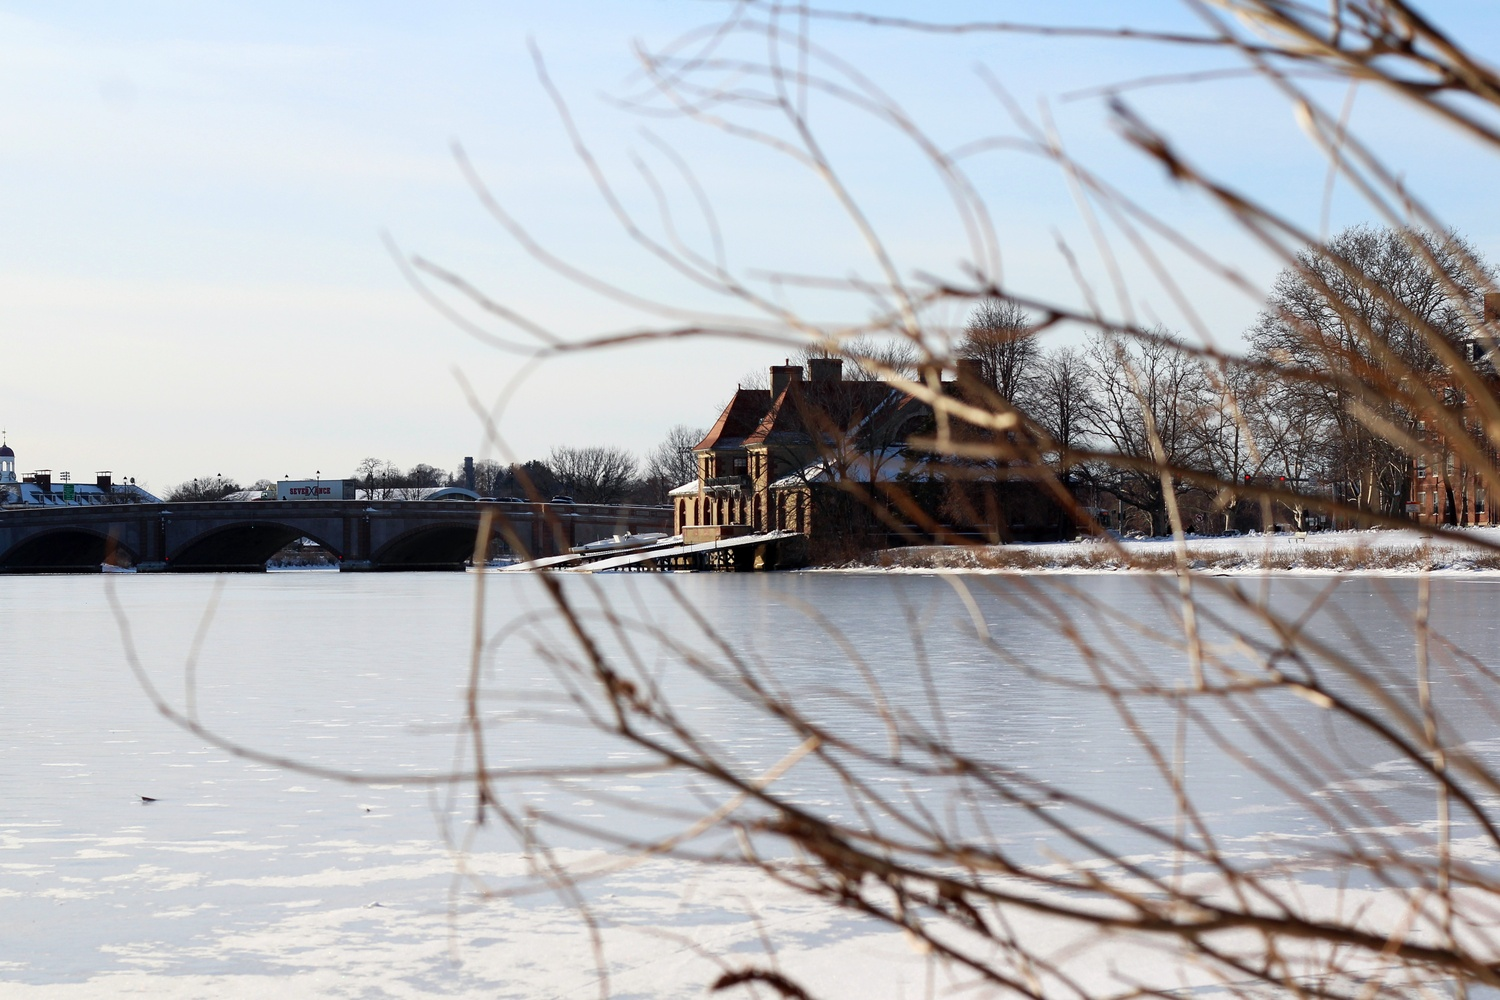 Weld boathouse sits along the frozen Charles River this chilly winter.